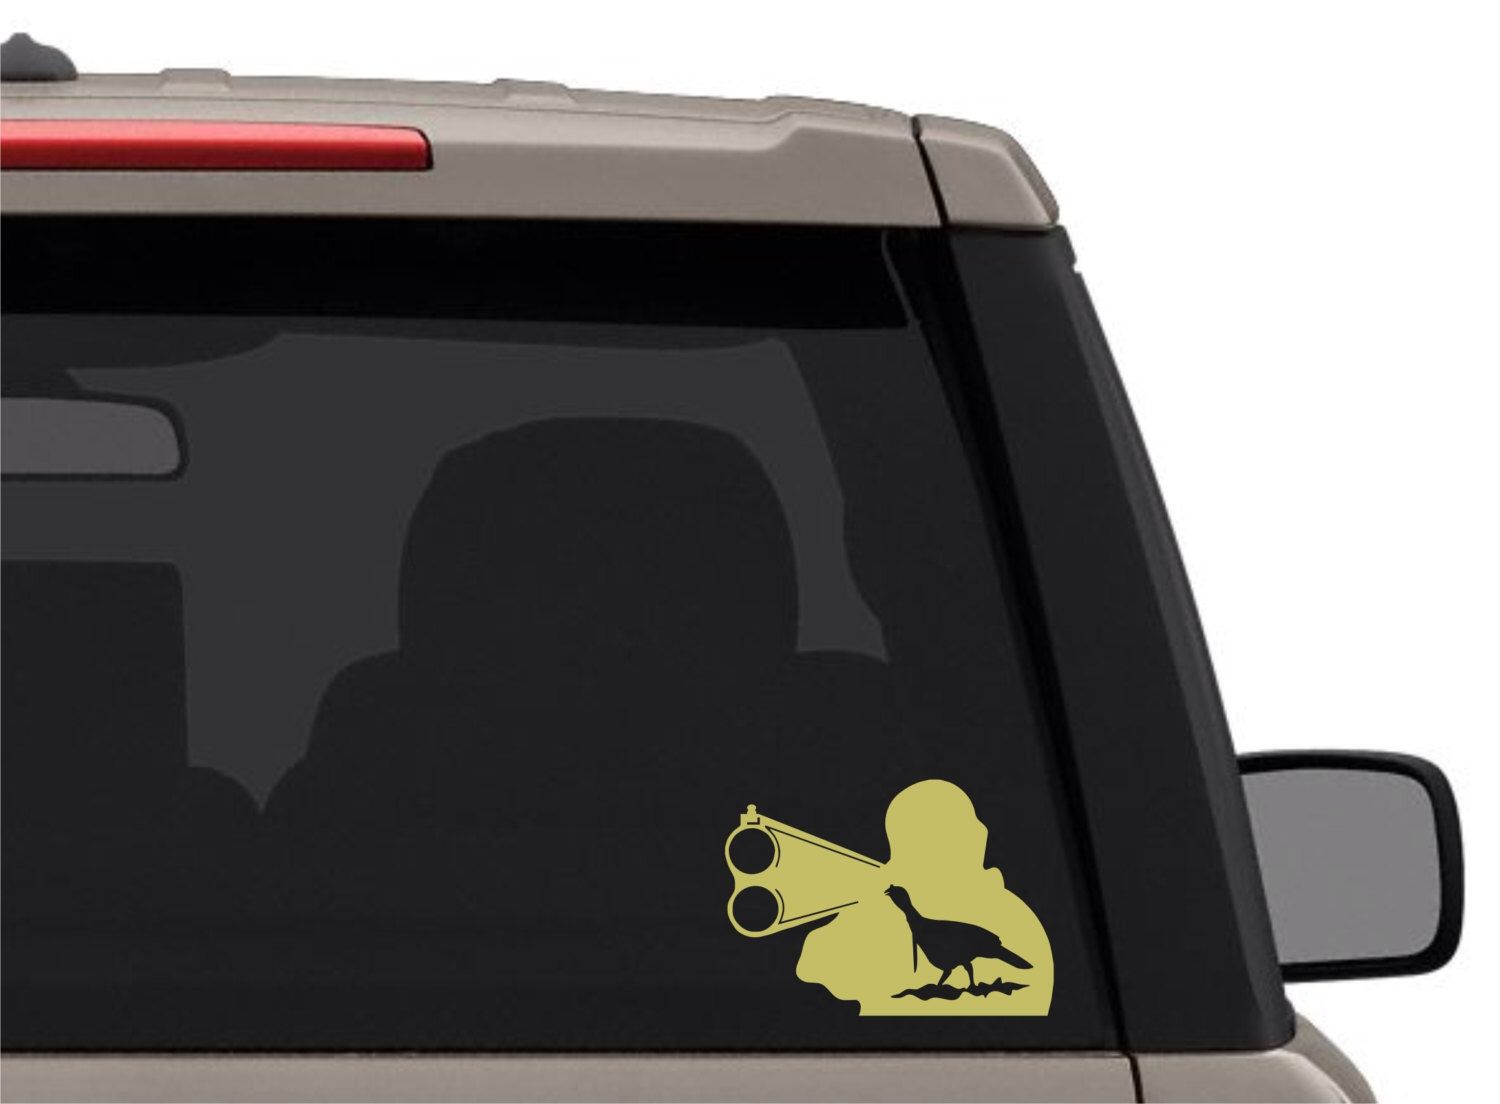 TURKEY HUNTING Vinyl Decal Graphic Sticker For Boatcartrucksuv - Rear window hunting decals for trucks